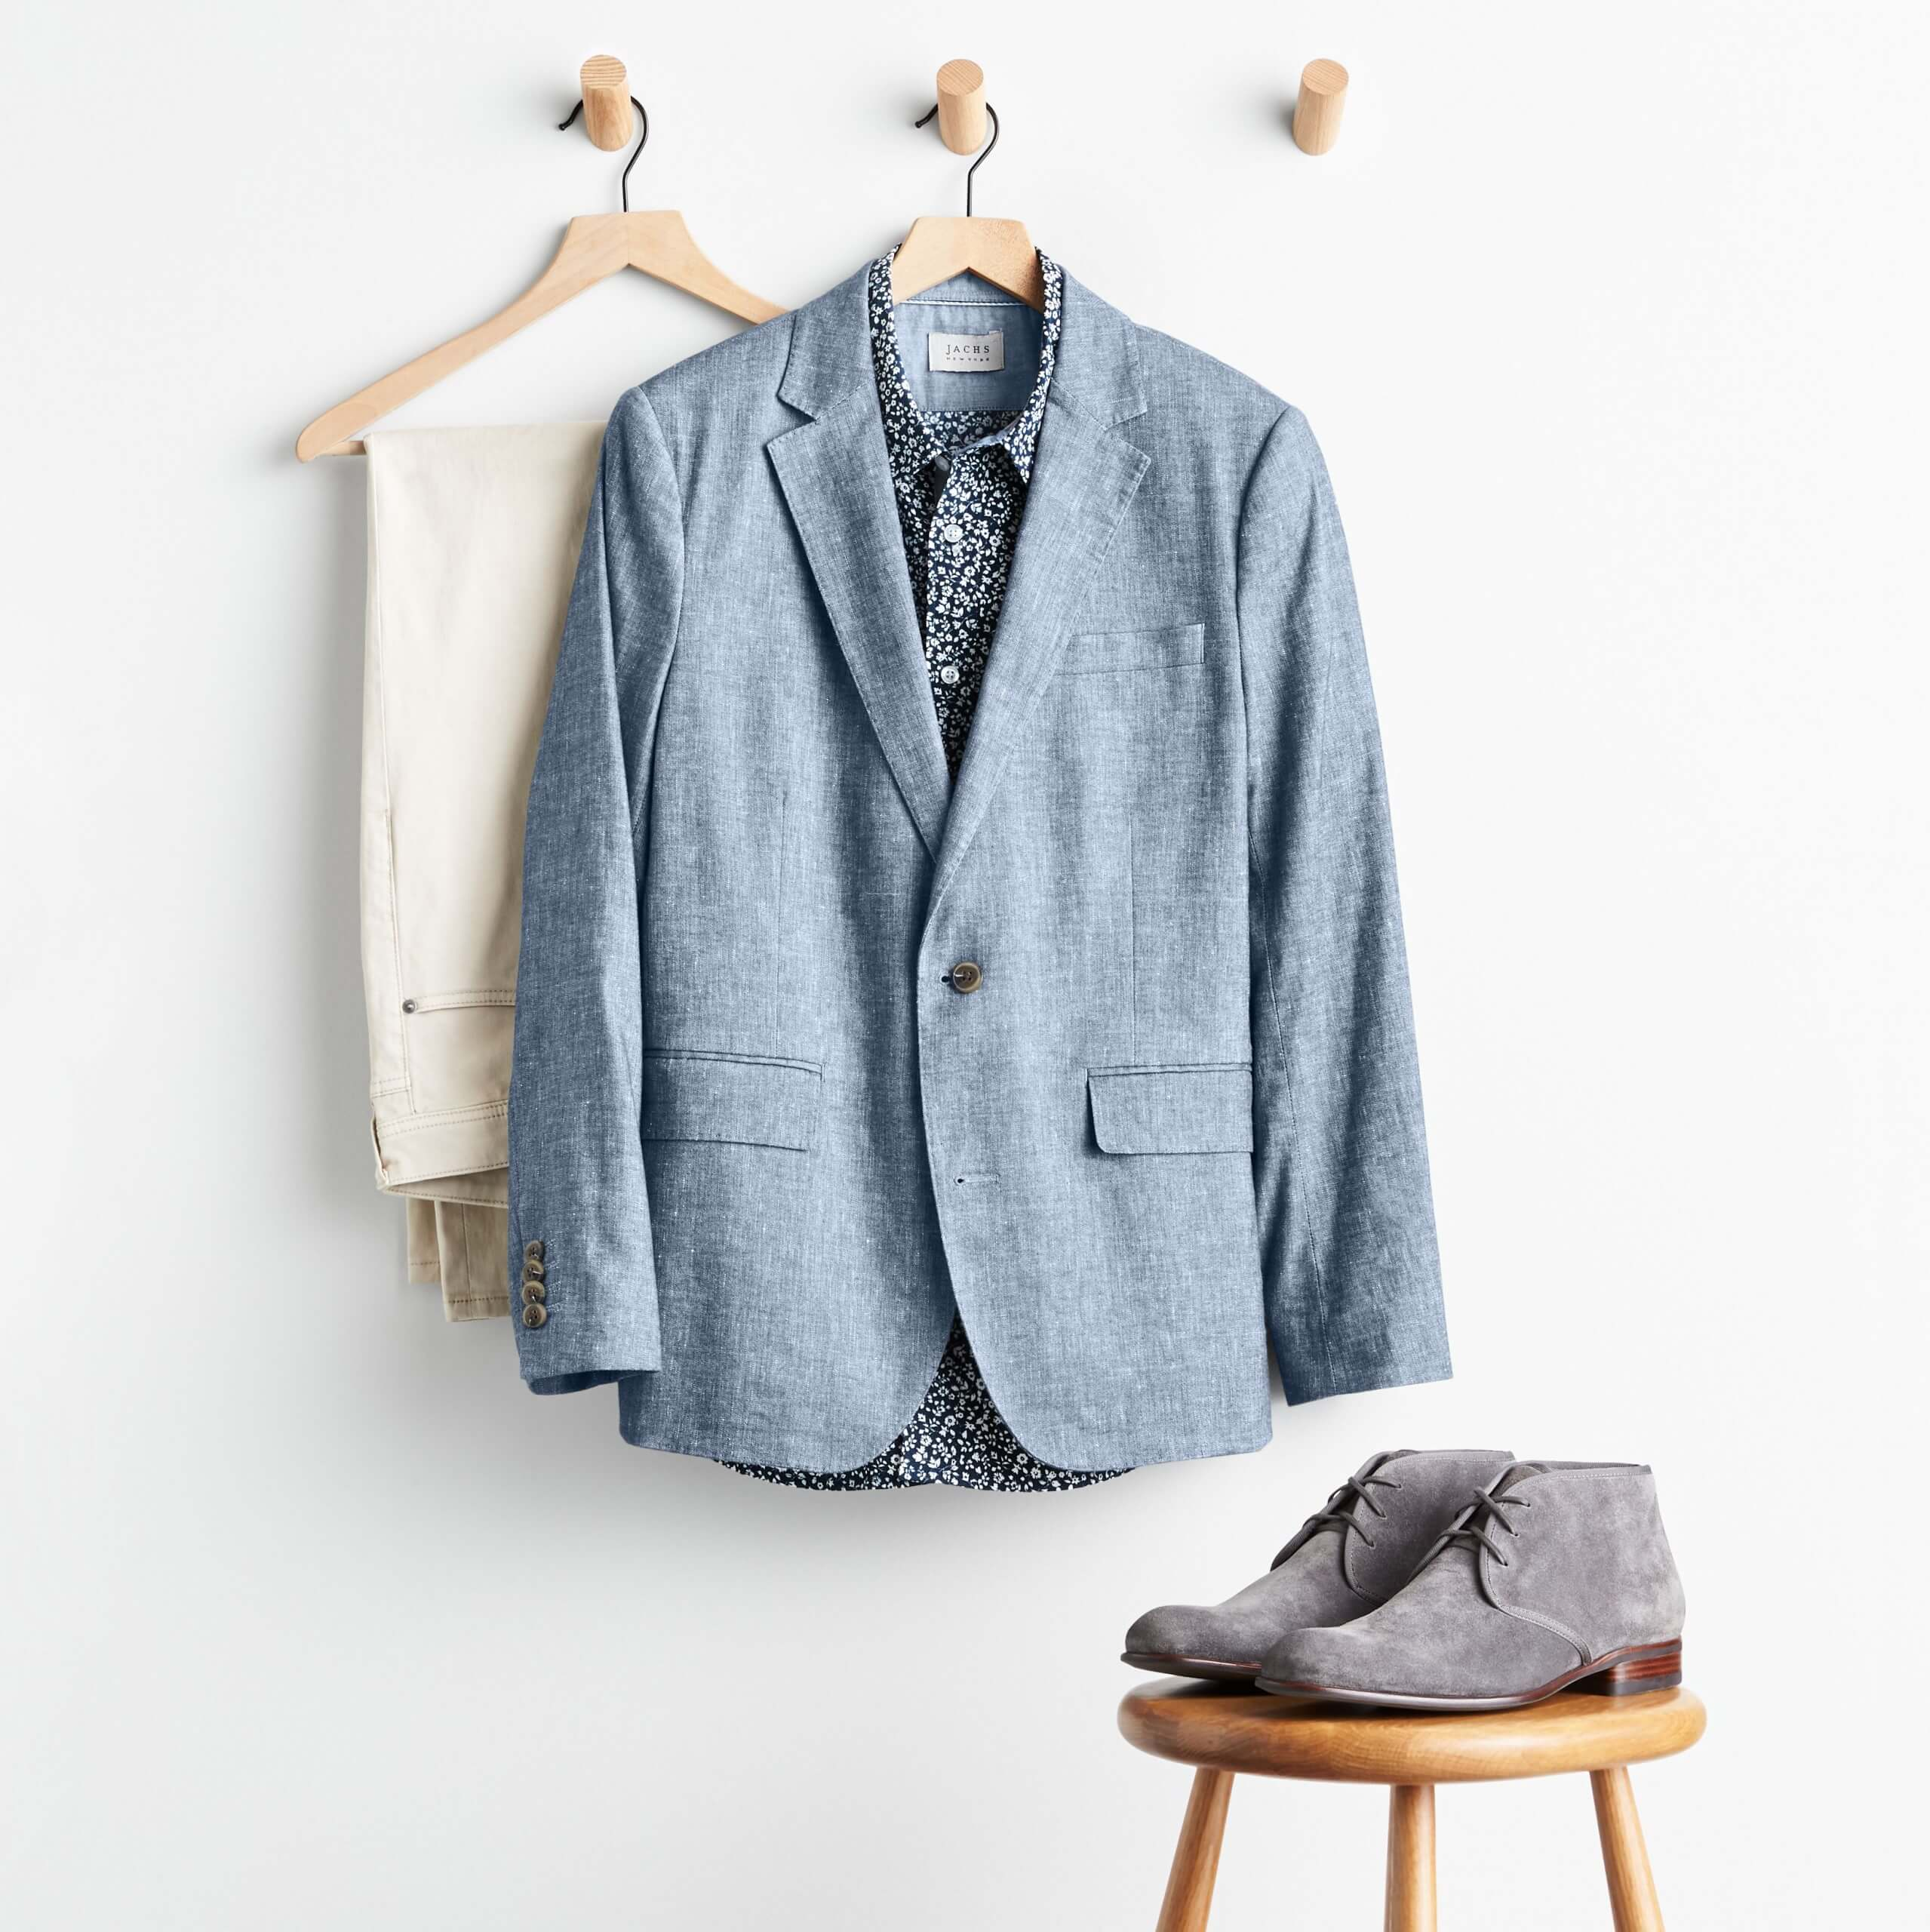 Stitch Fix men's outfit including chambray blazer, floral button-down shirt, beige pants and grey chukkas on a stool.